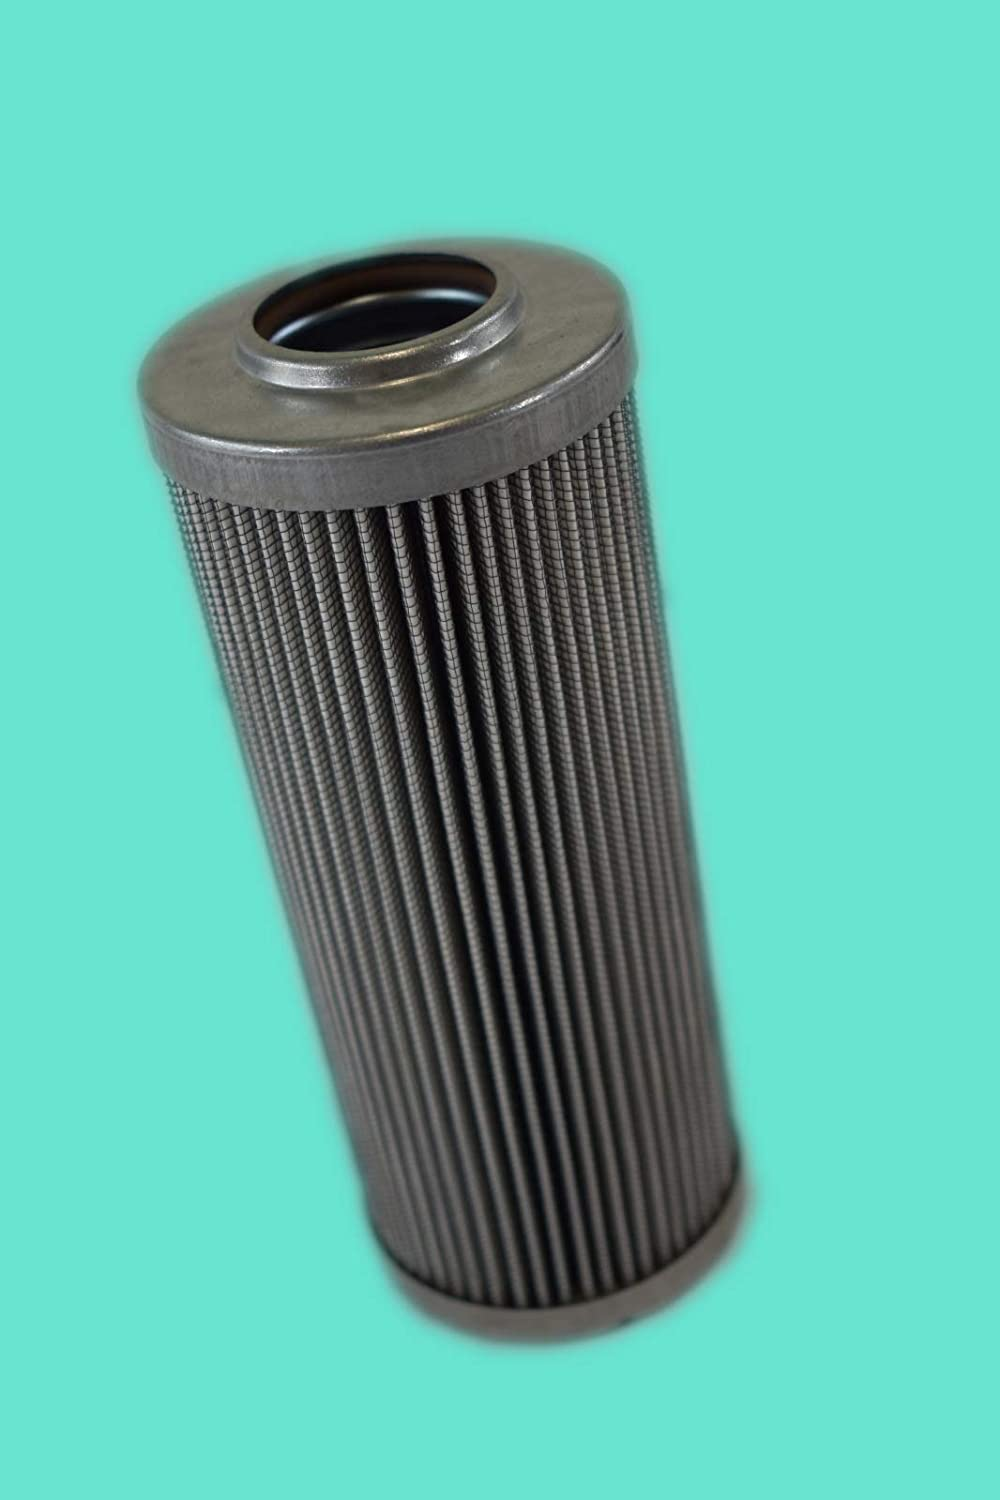 HYCON HYDAC 1260885 Replacement Filter by Mission Filter